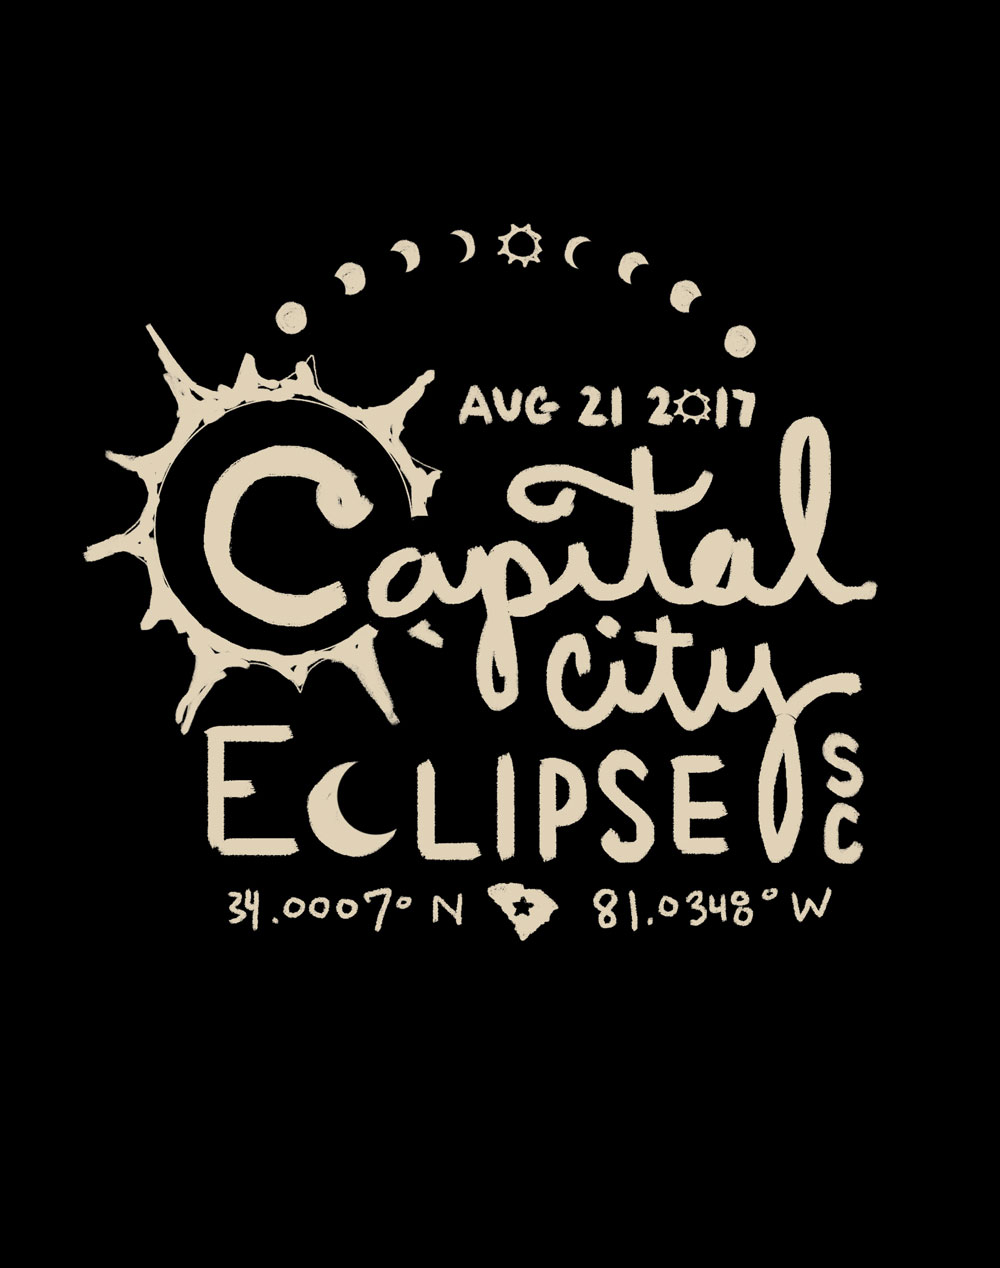 4. This is a more simple, type-centric, concept but still has a bunch of eclipse references.